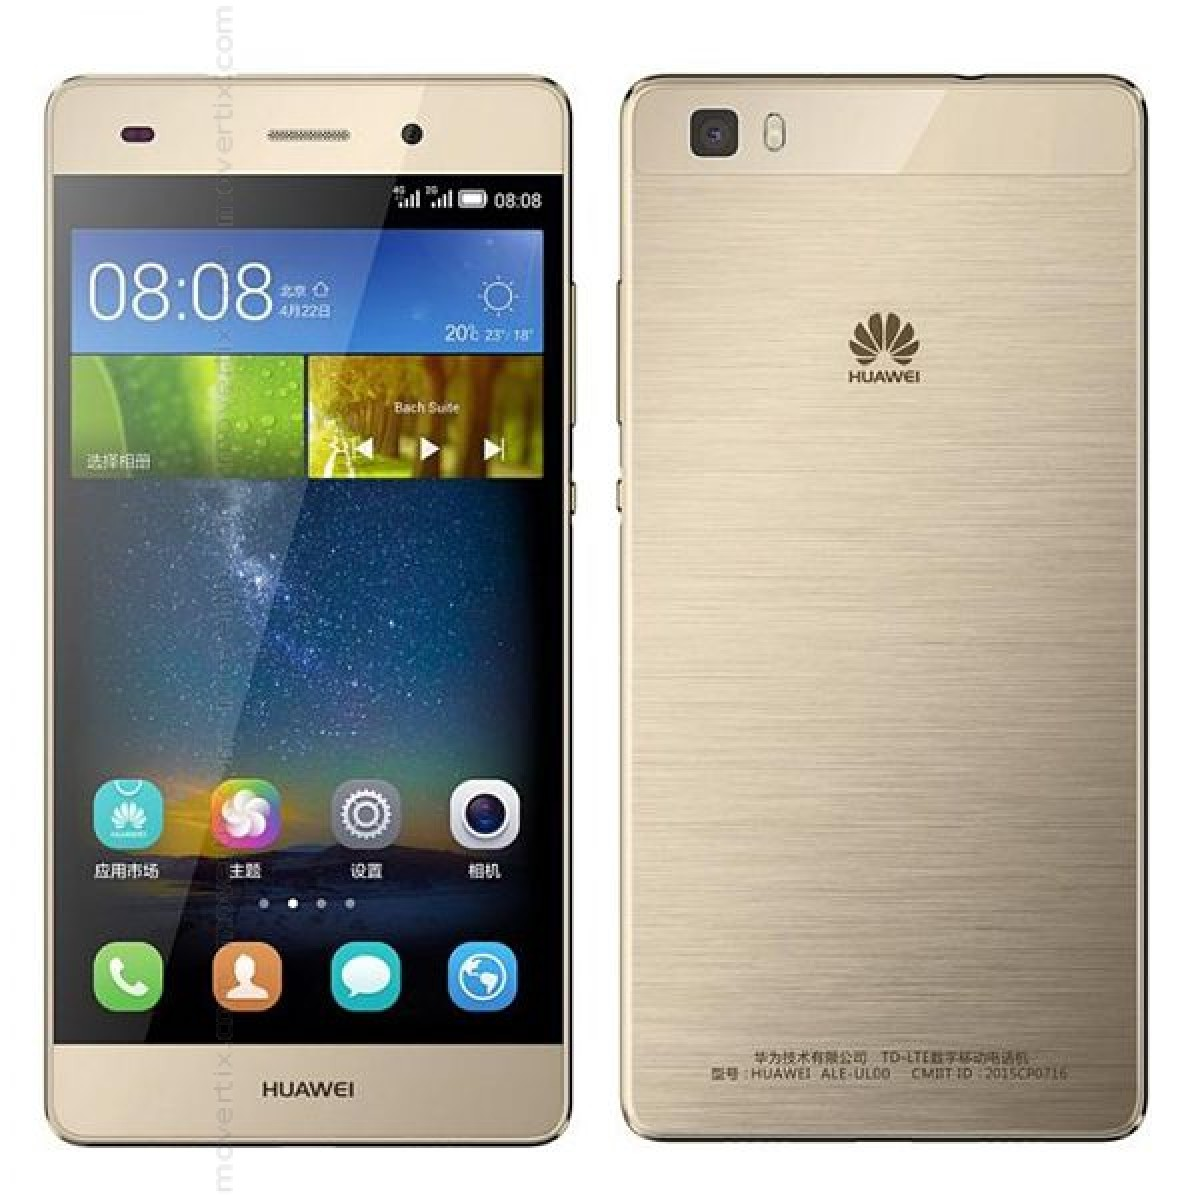 huawei p8 lite dual sim gold 6901443078646 movertix. Black Bedroom Furniture Sets. Home Design Ideas